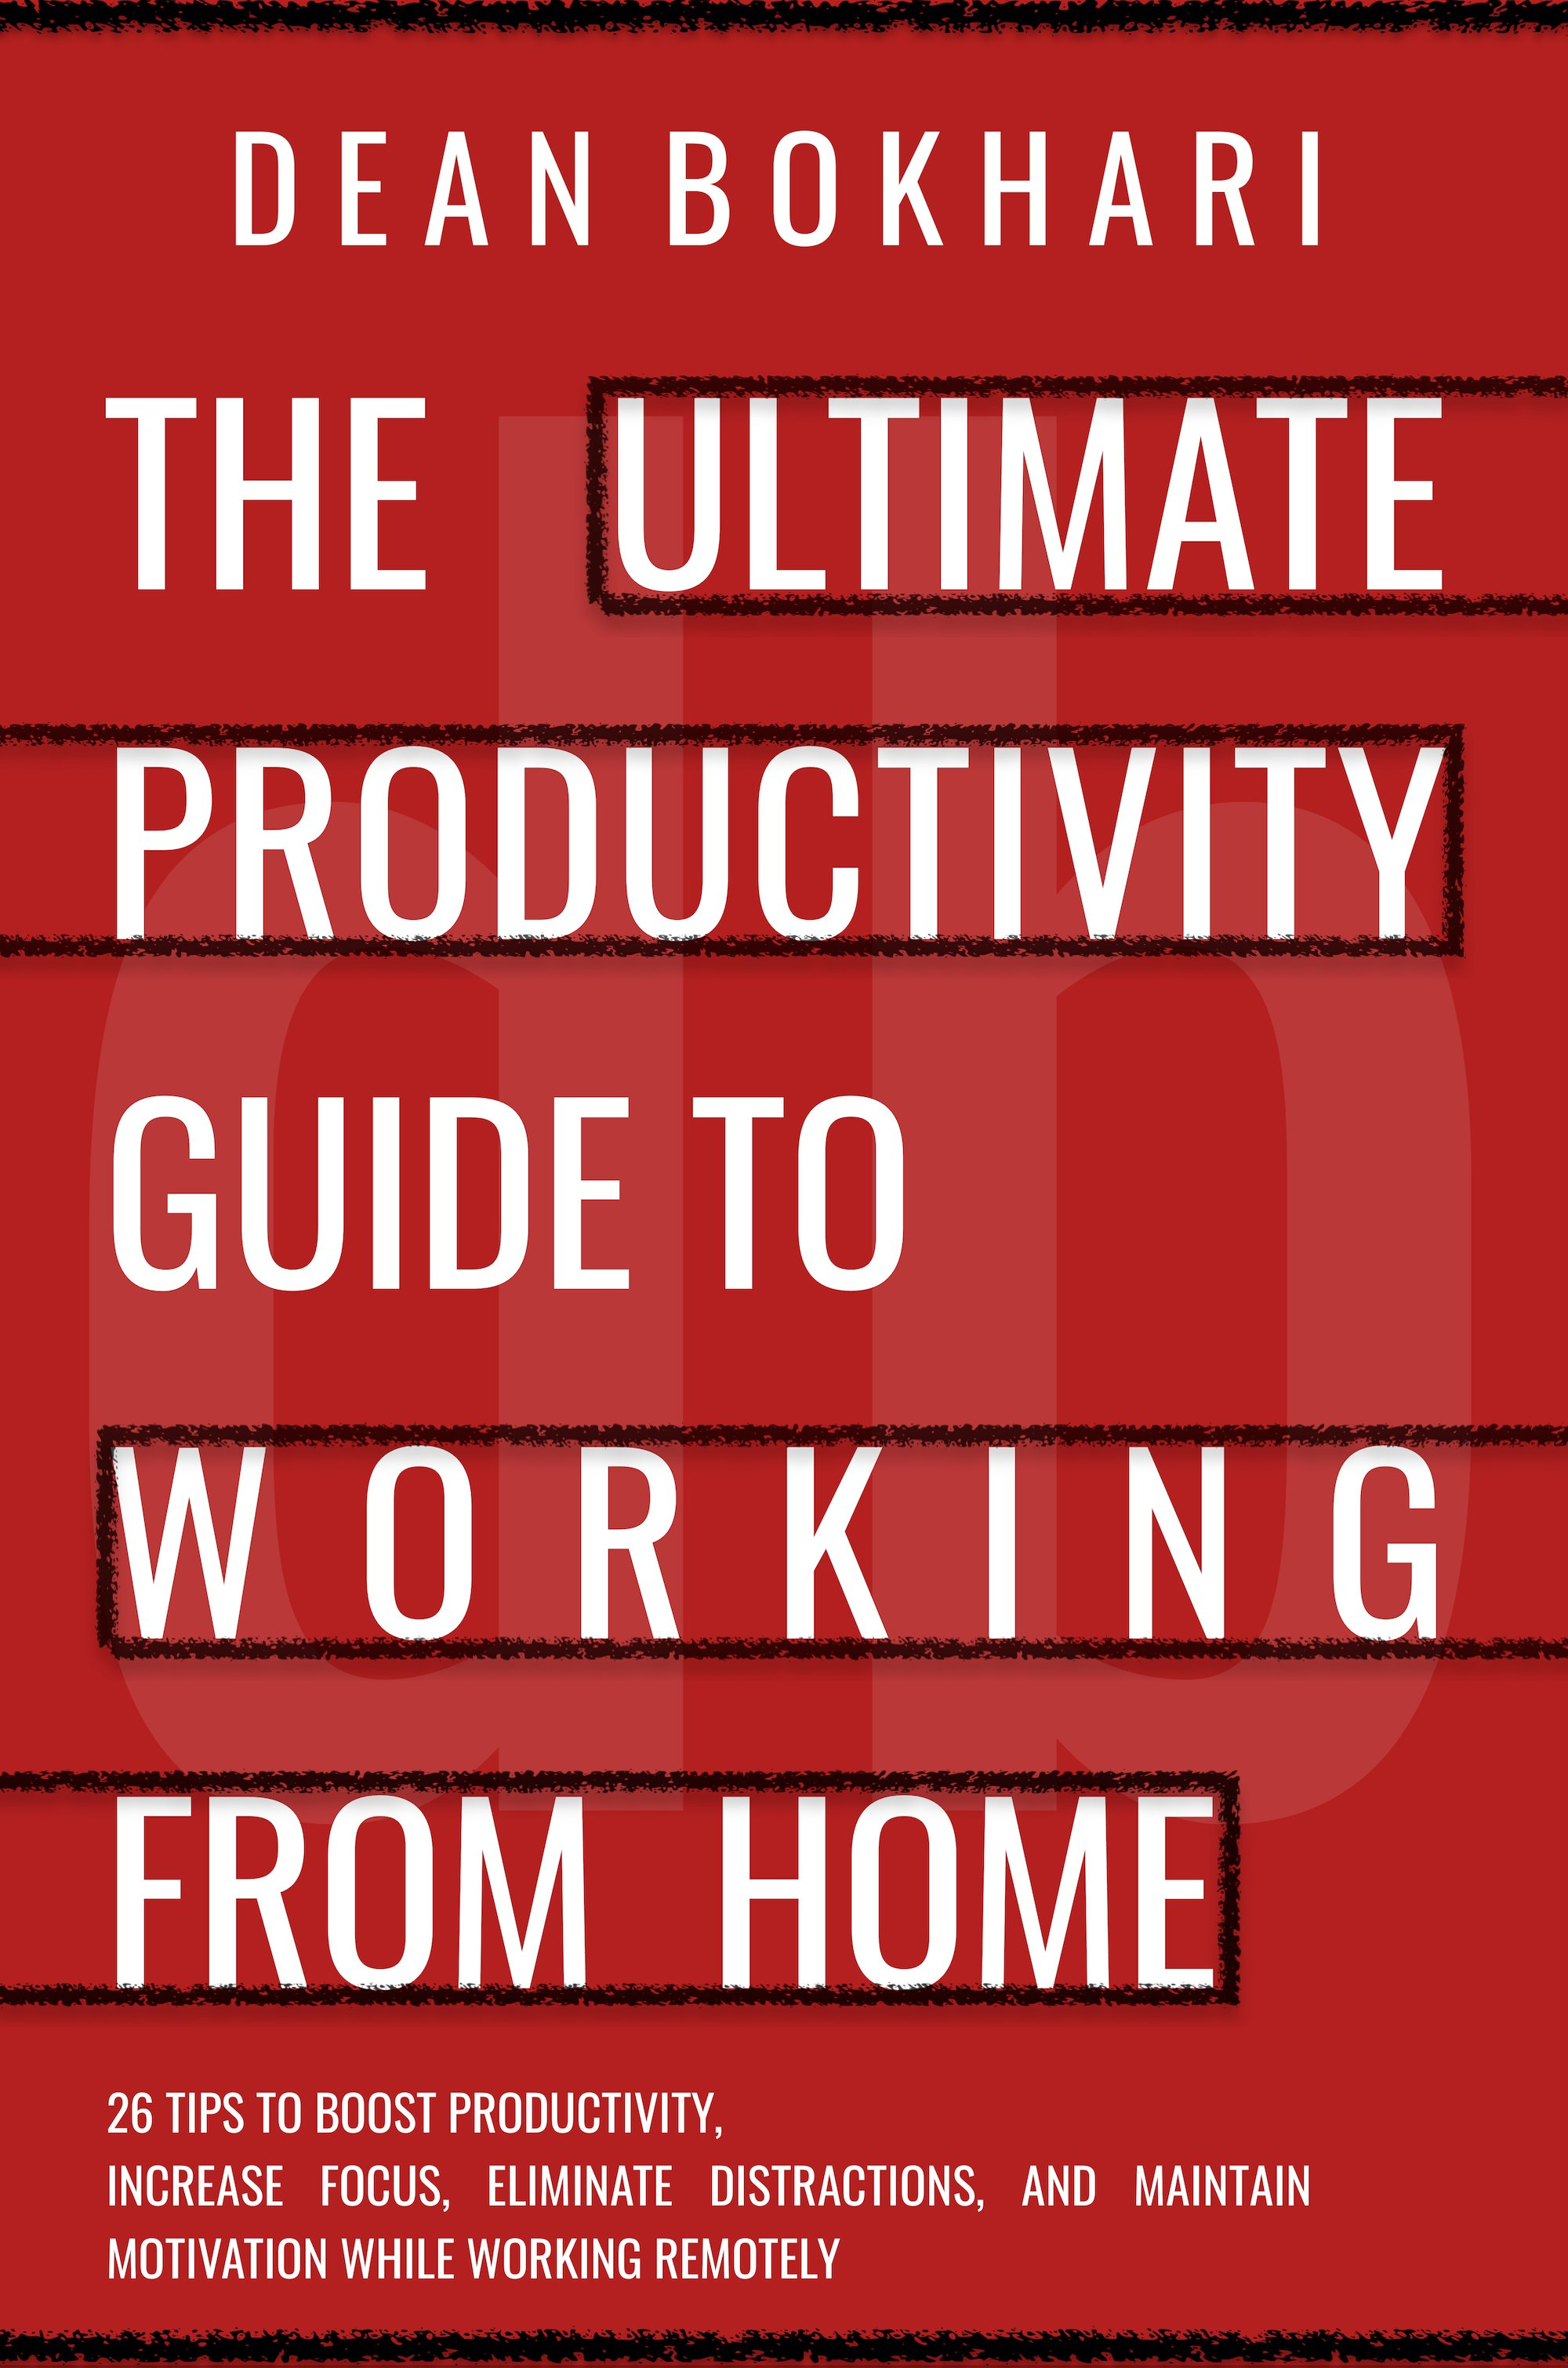 working_from_home_tips